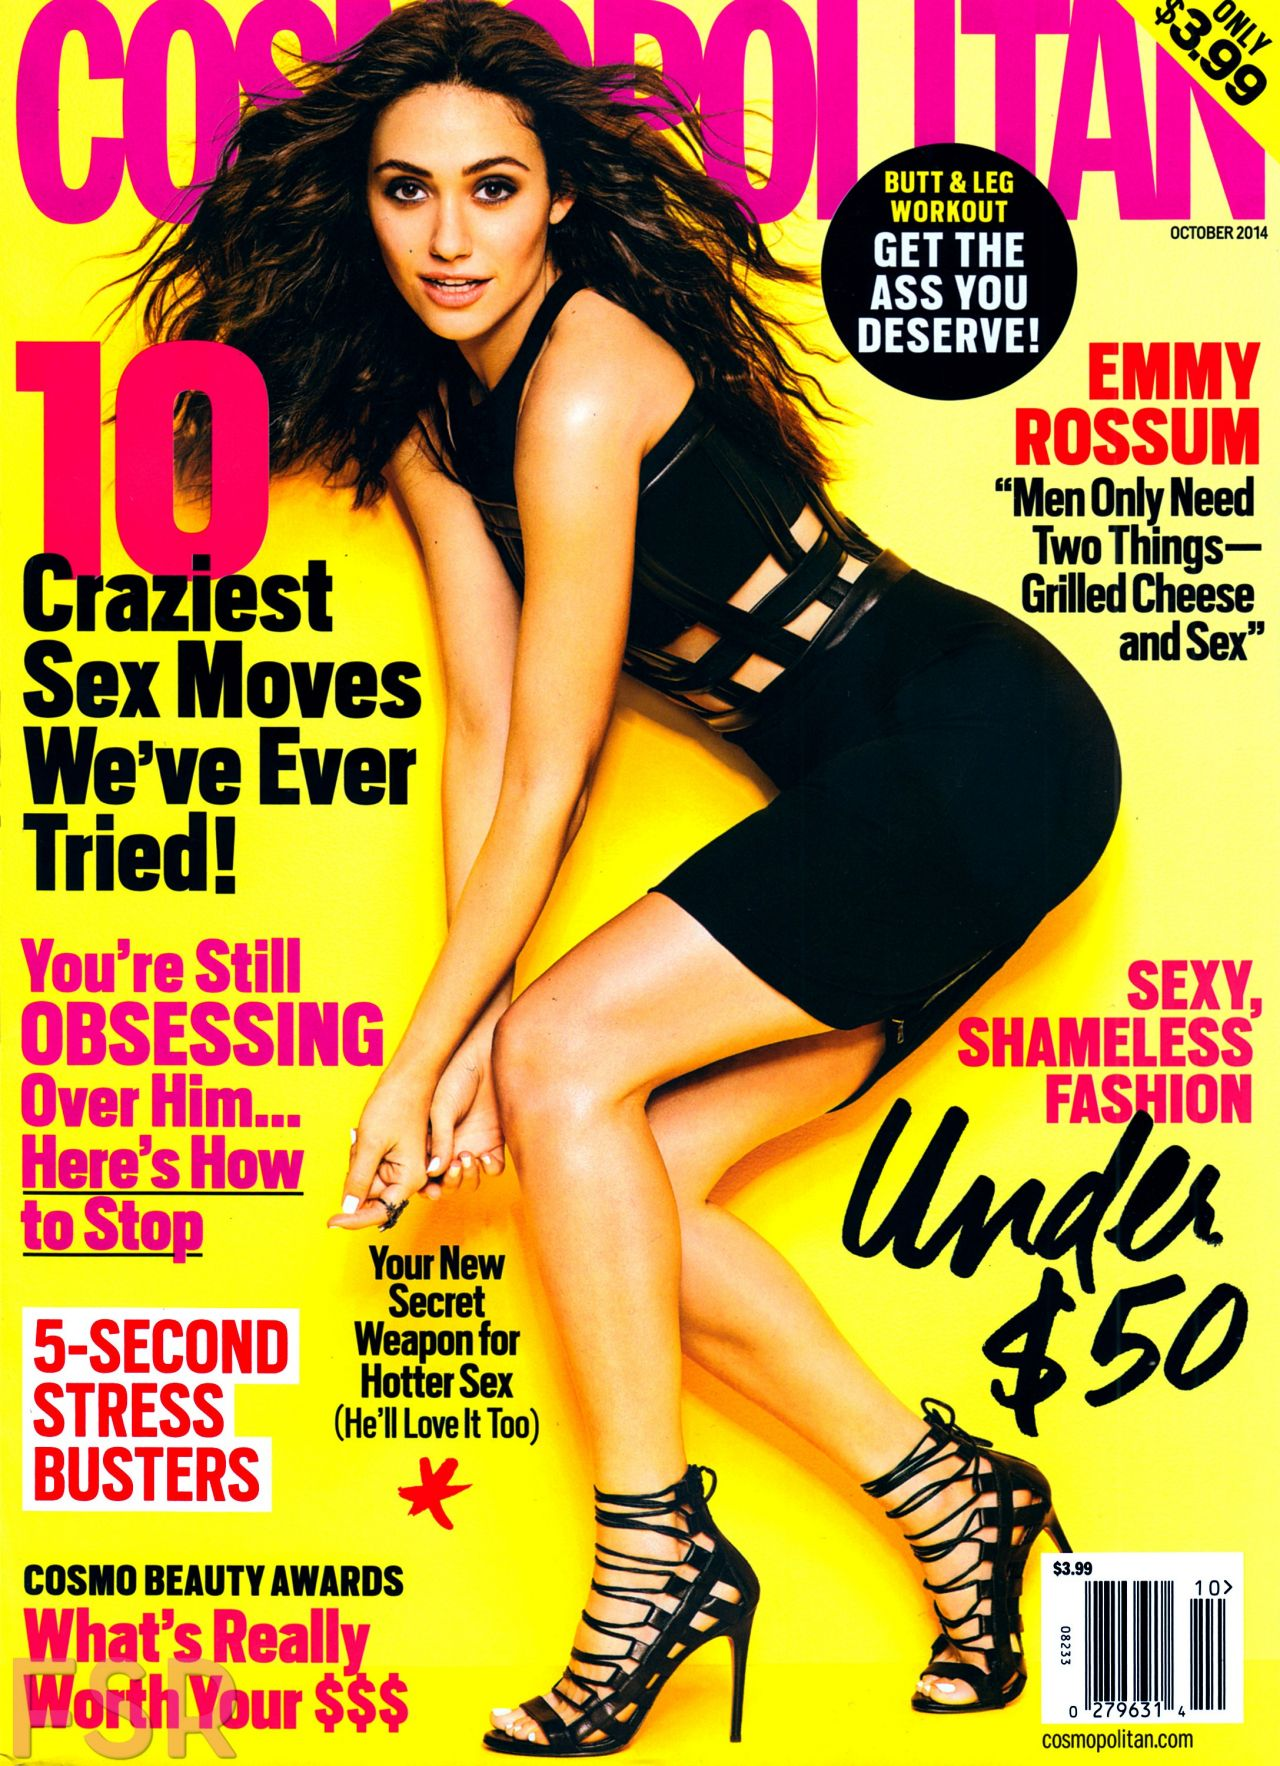 Emmy Rossum - Cosmopolitan Magazine October 2014 Issue